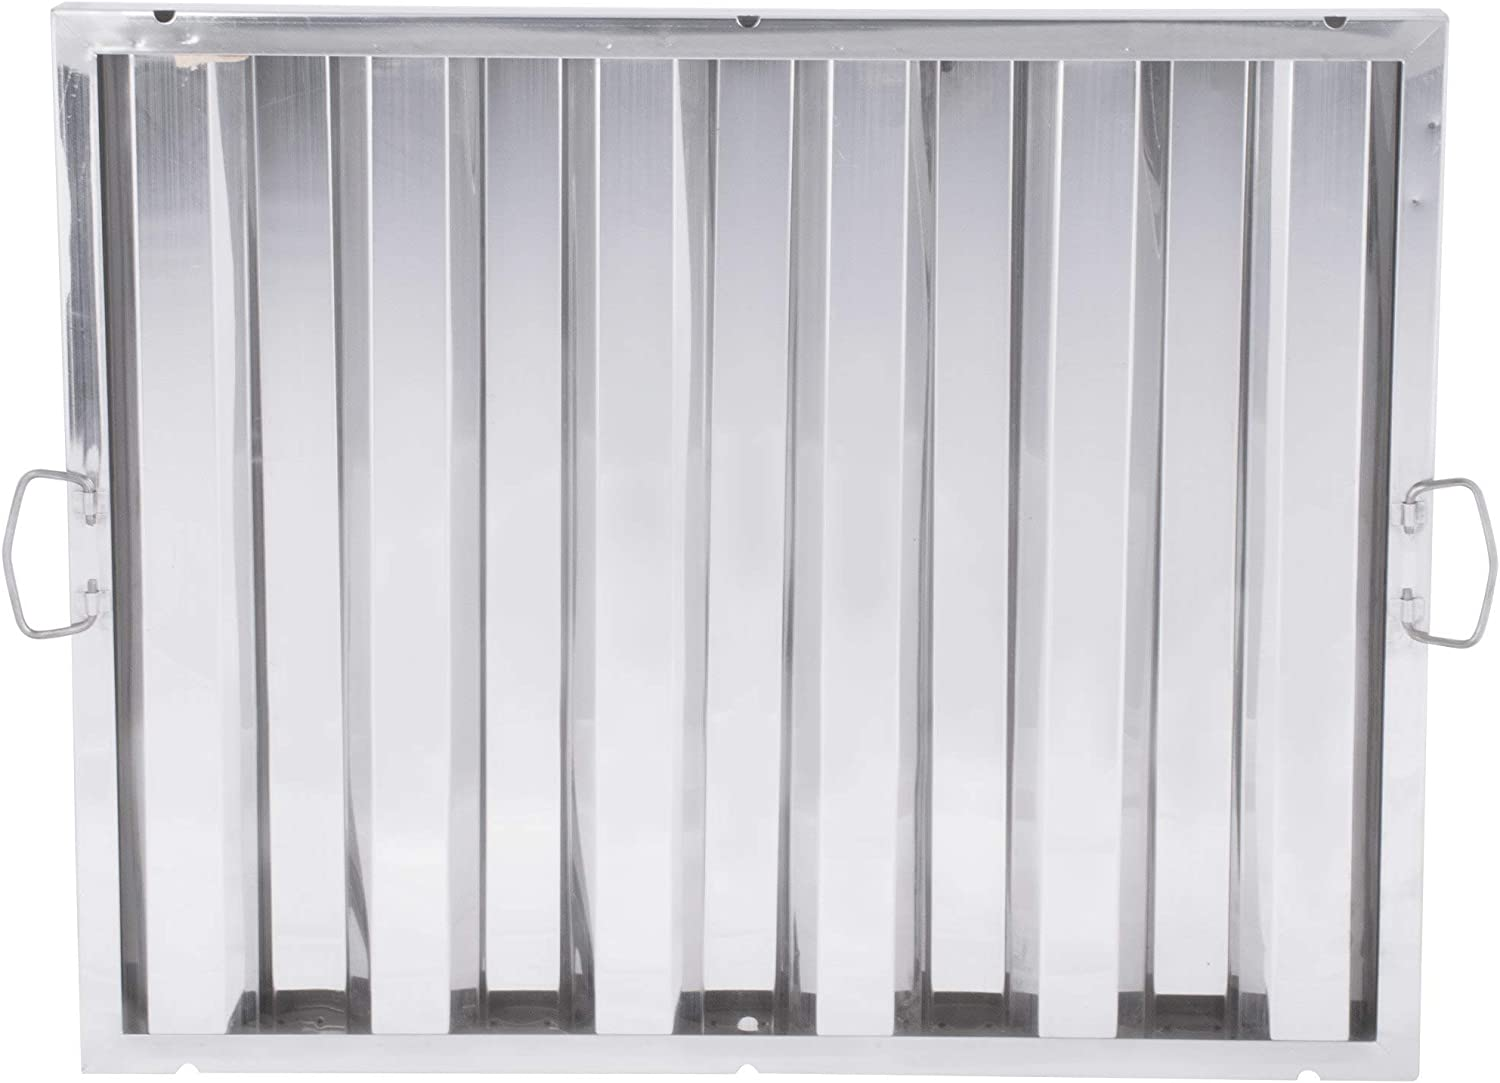 "(6) FILTER STAINLESS STEEL HOOD GREASE FILTERS DIFFERENT SIZES RESTAURANT 6 PACK (20"" X 25"") 71c3JzQ0wnLSL1500_"